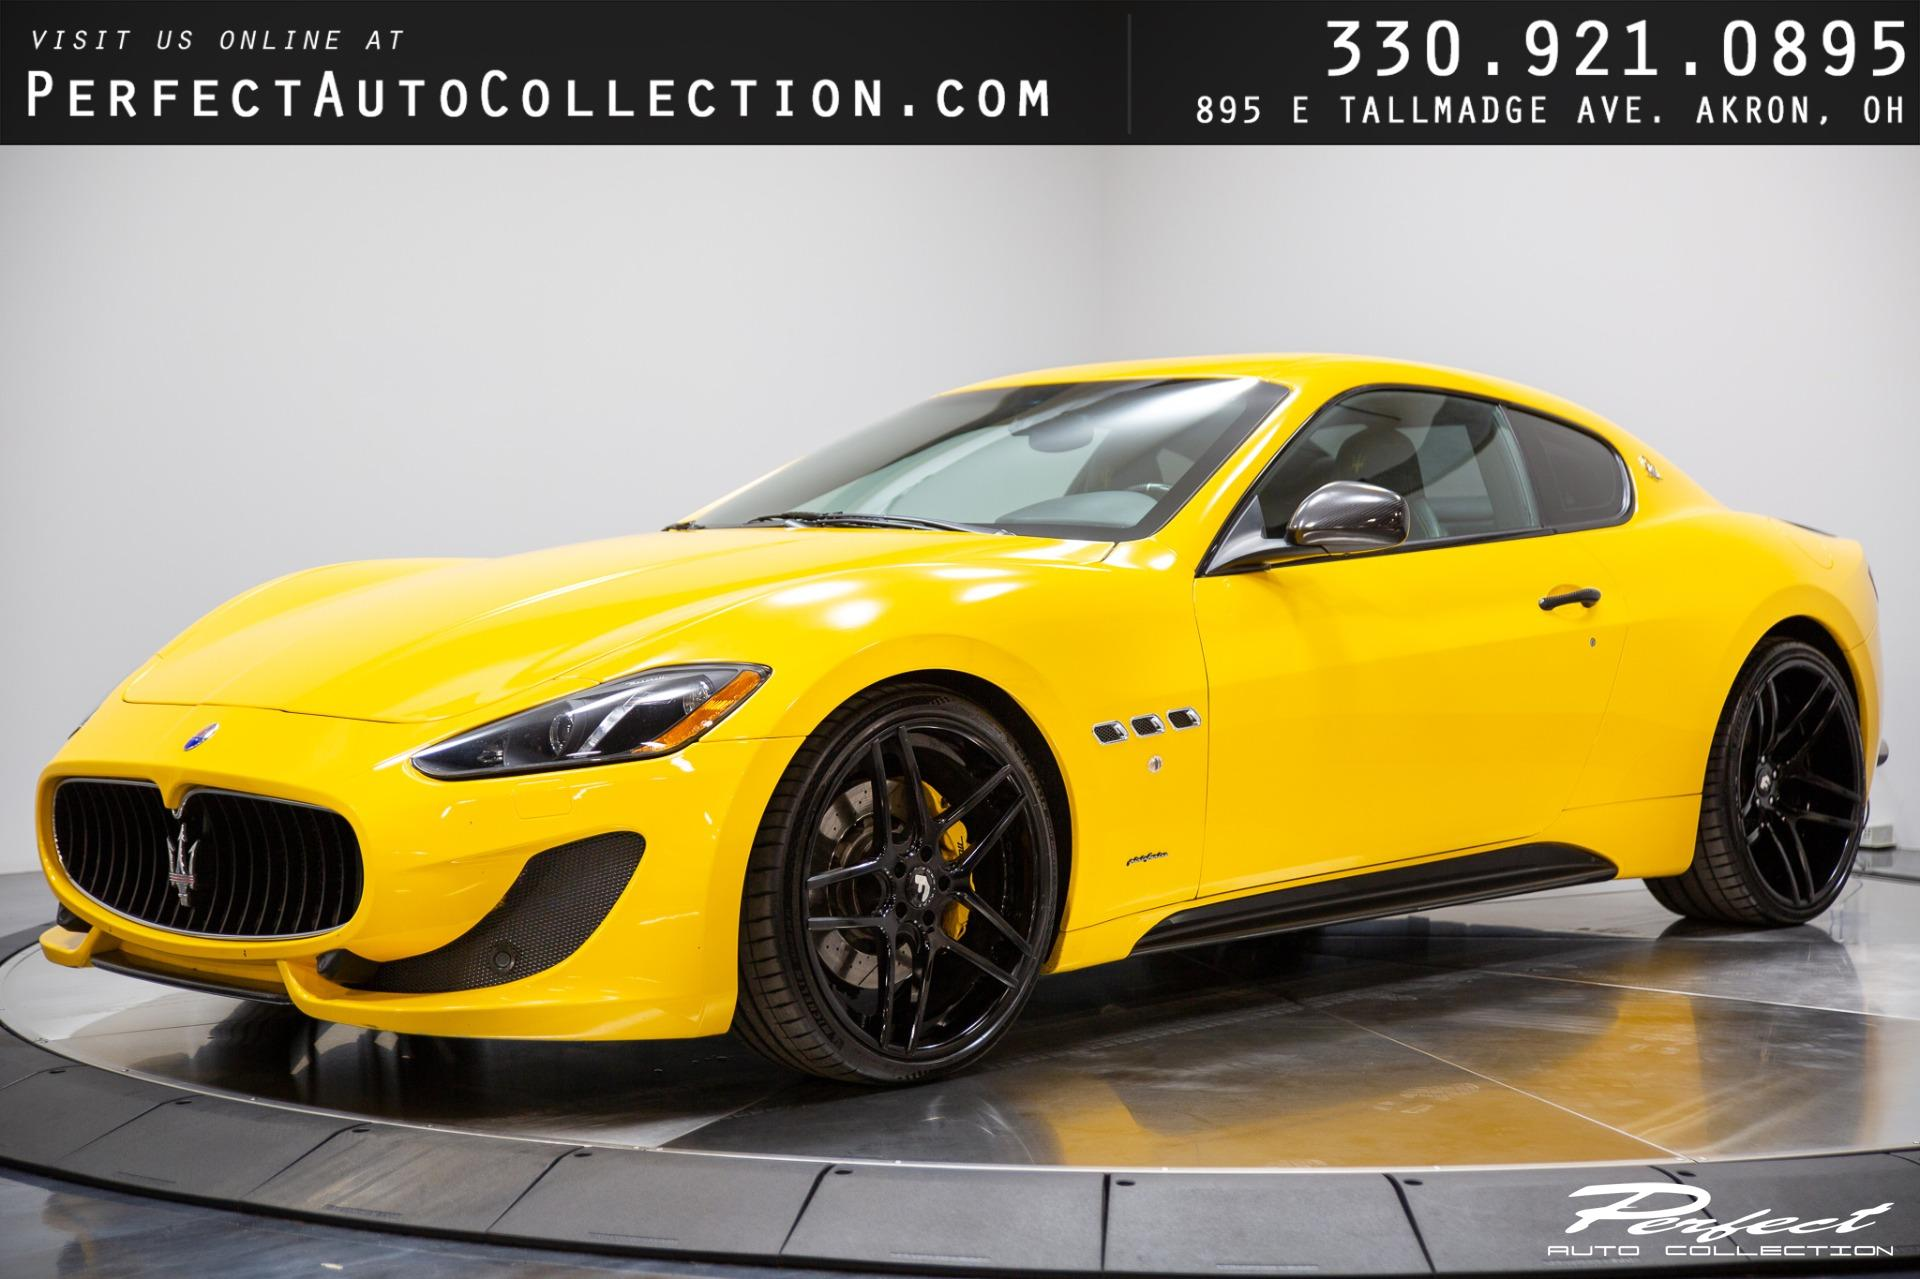 Used 2013 Maserati GranTurismo MC Package for sale Sold at Perfect Auto Collection in Akron OH 44310 1